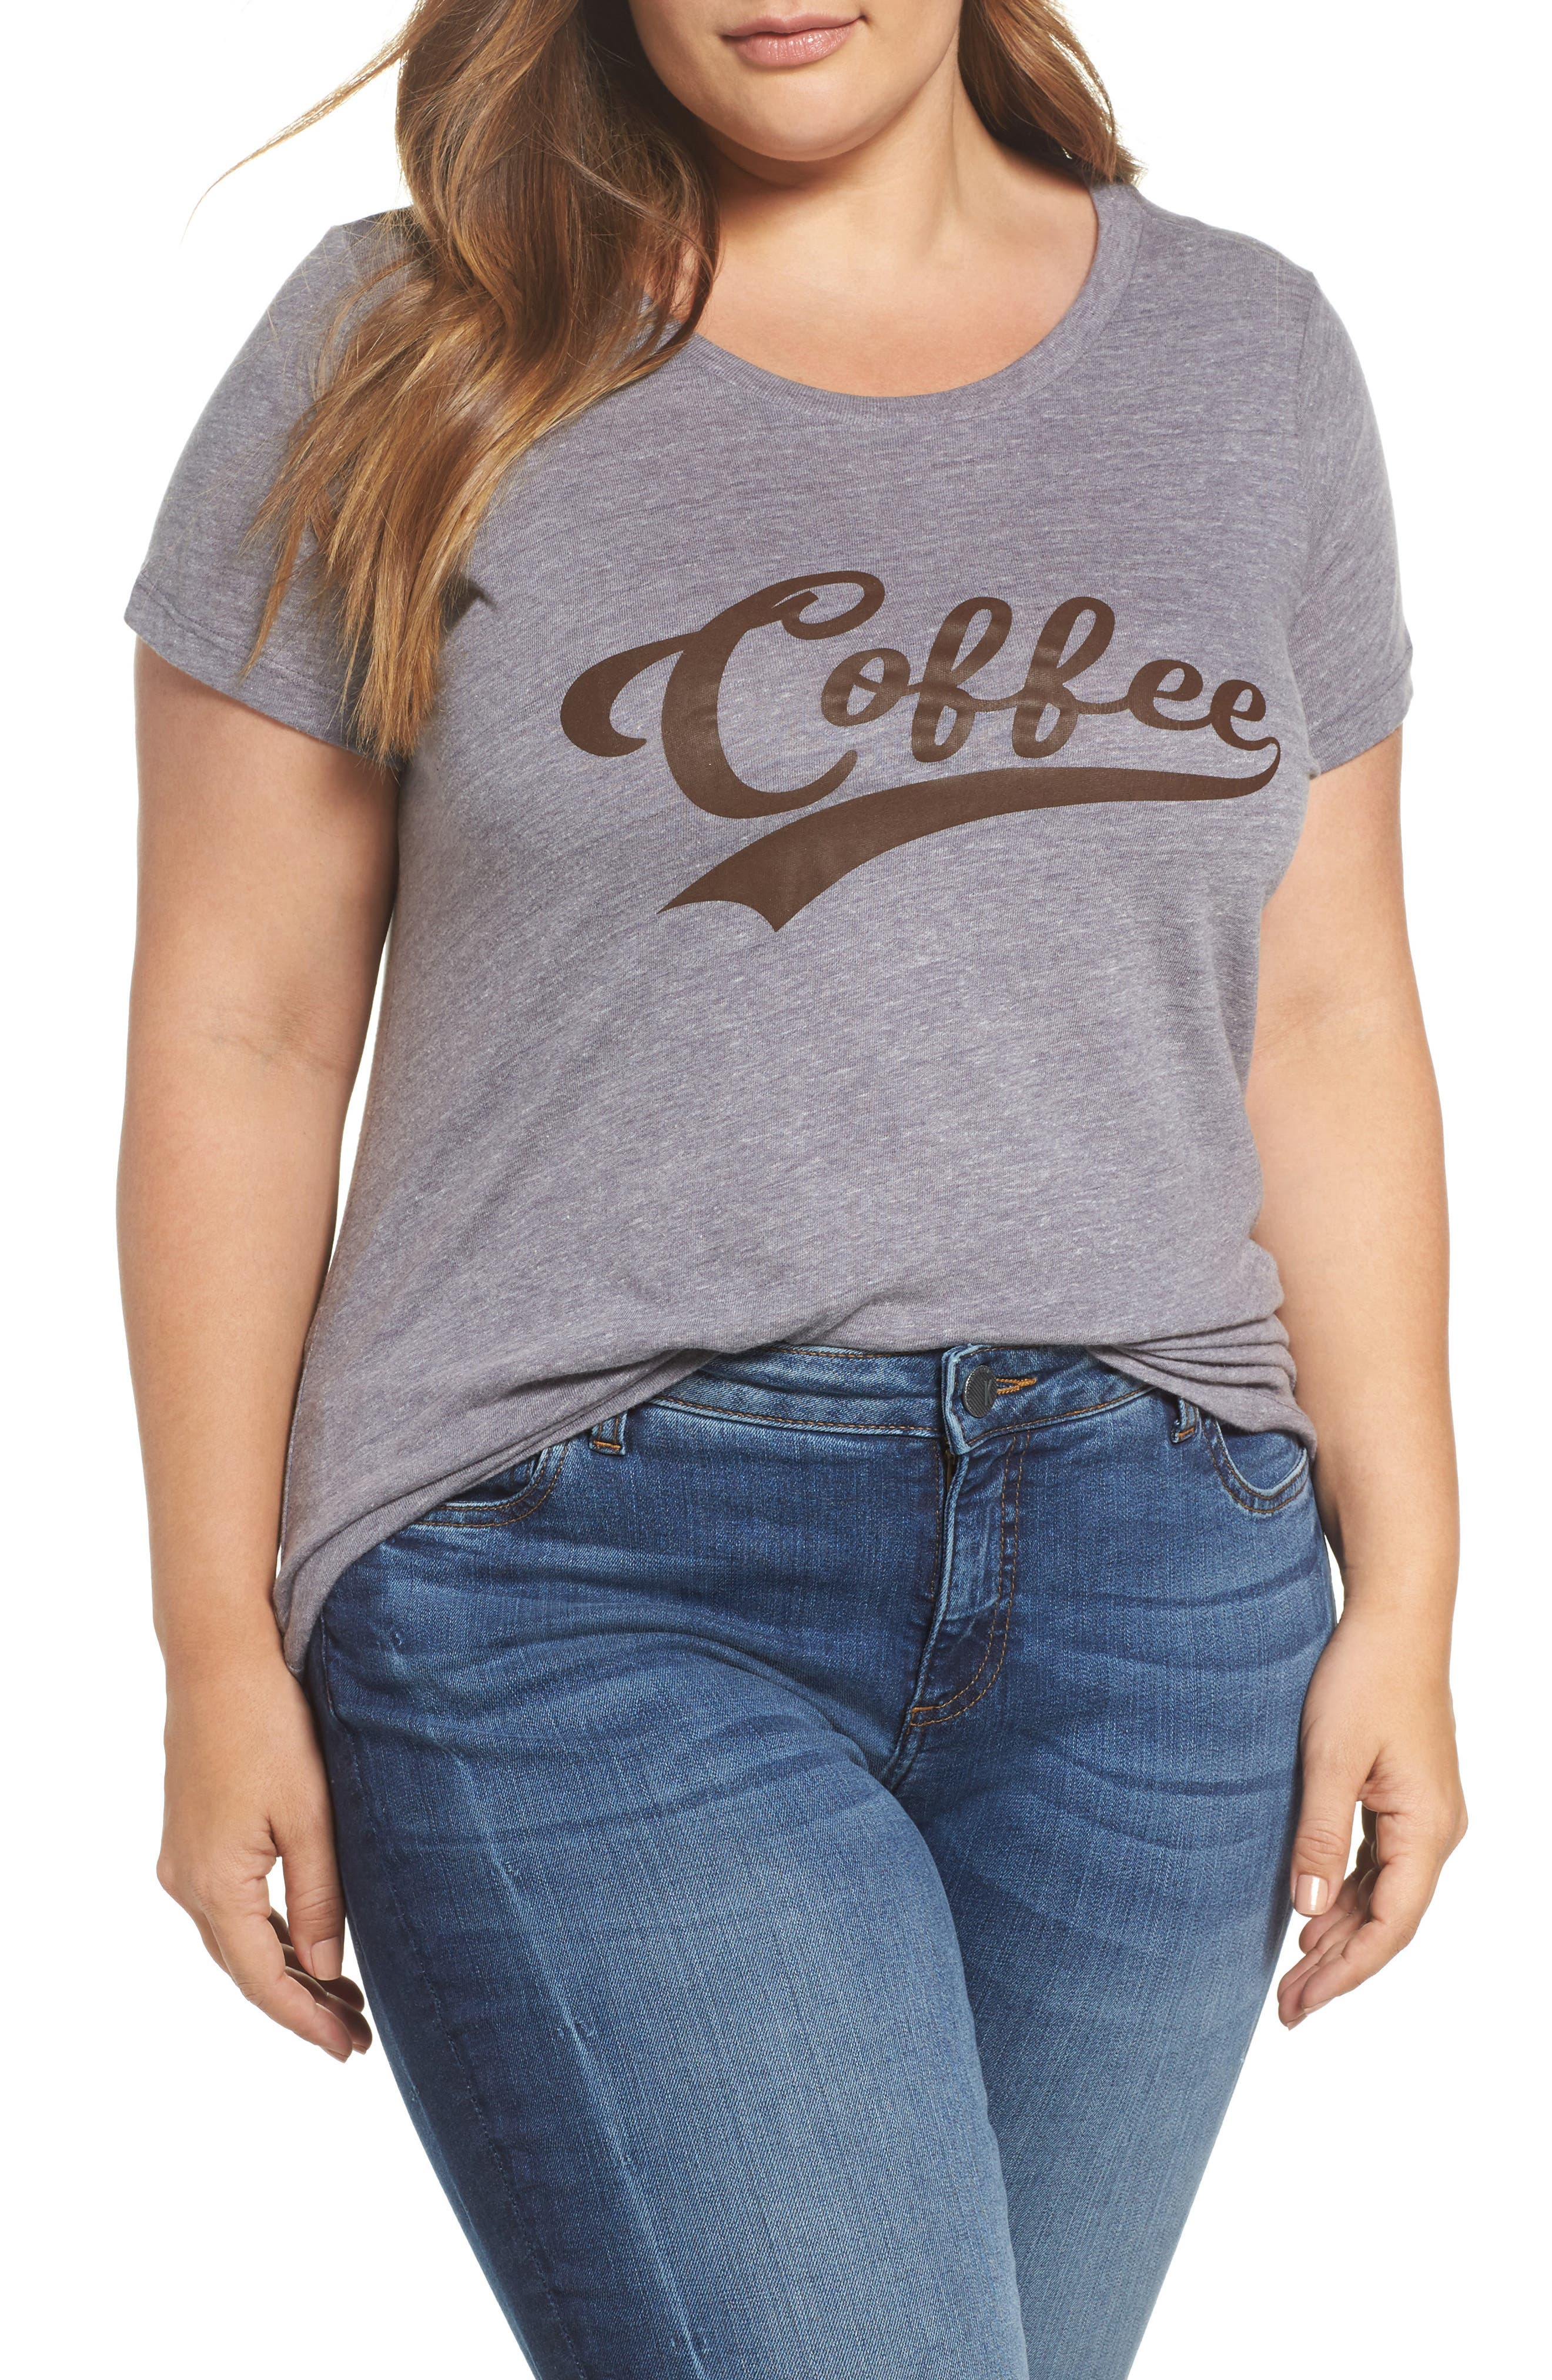 Alternate Image 1 Selected - Sub_Urban Riot Coffee Graphic Tee (Plus Size)